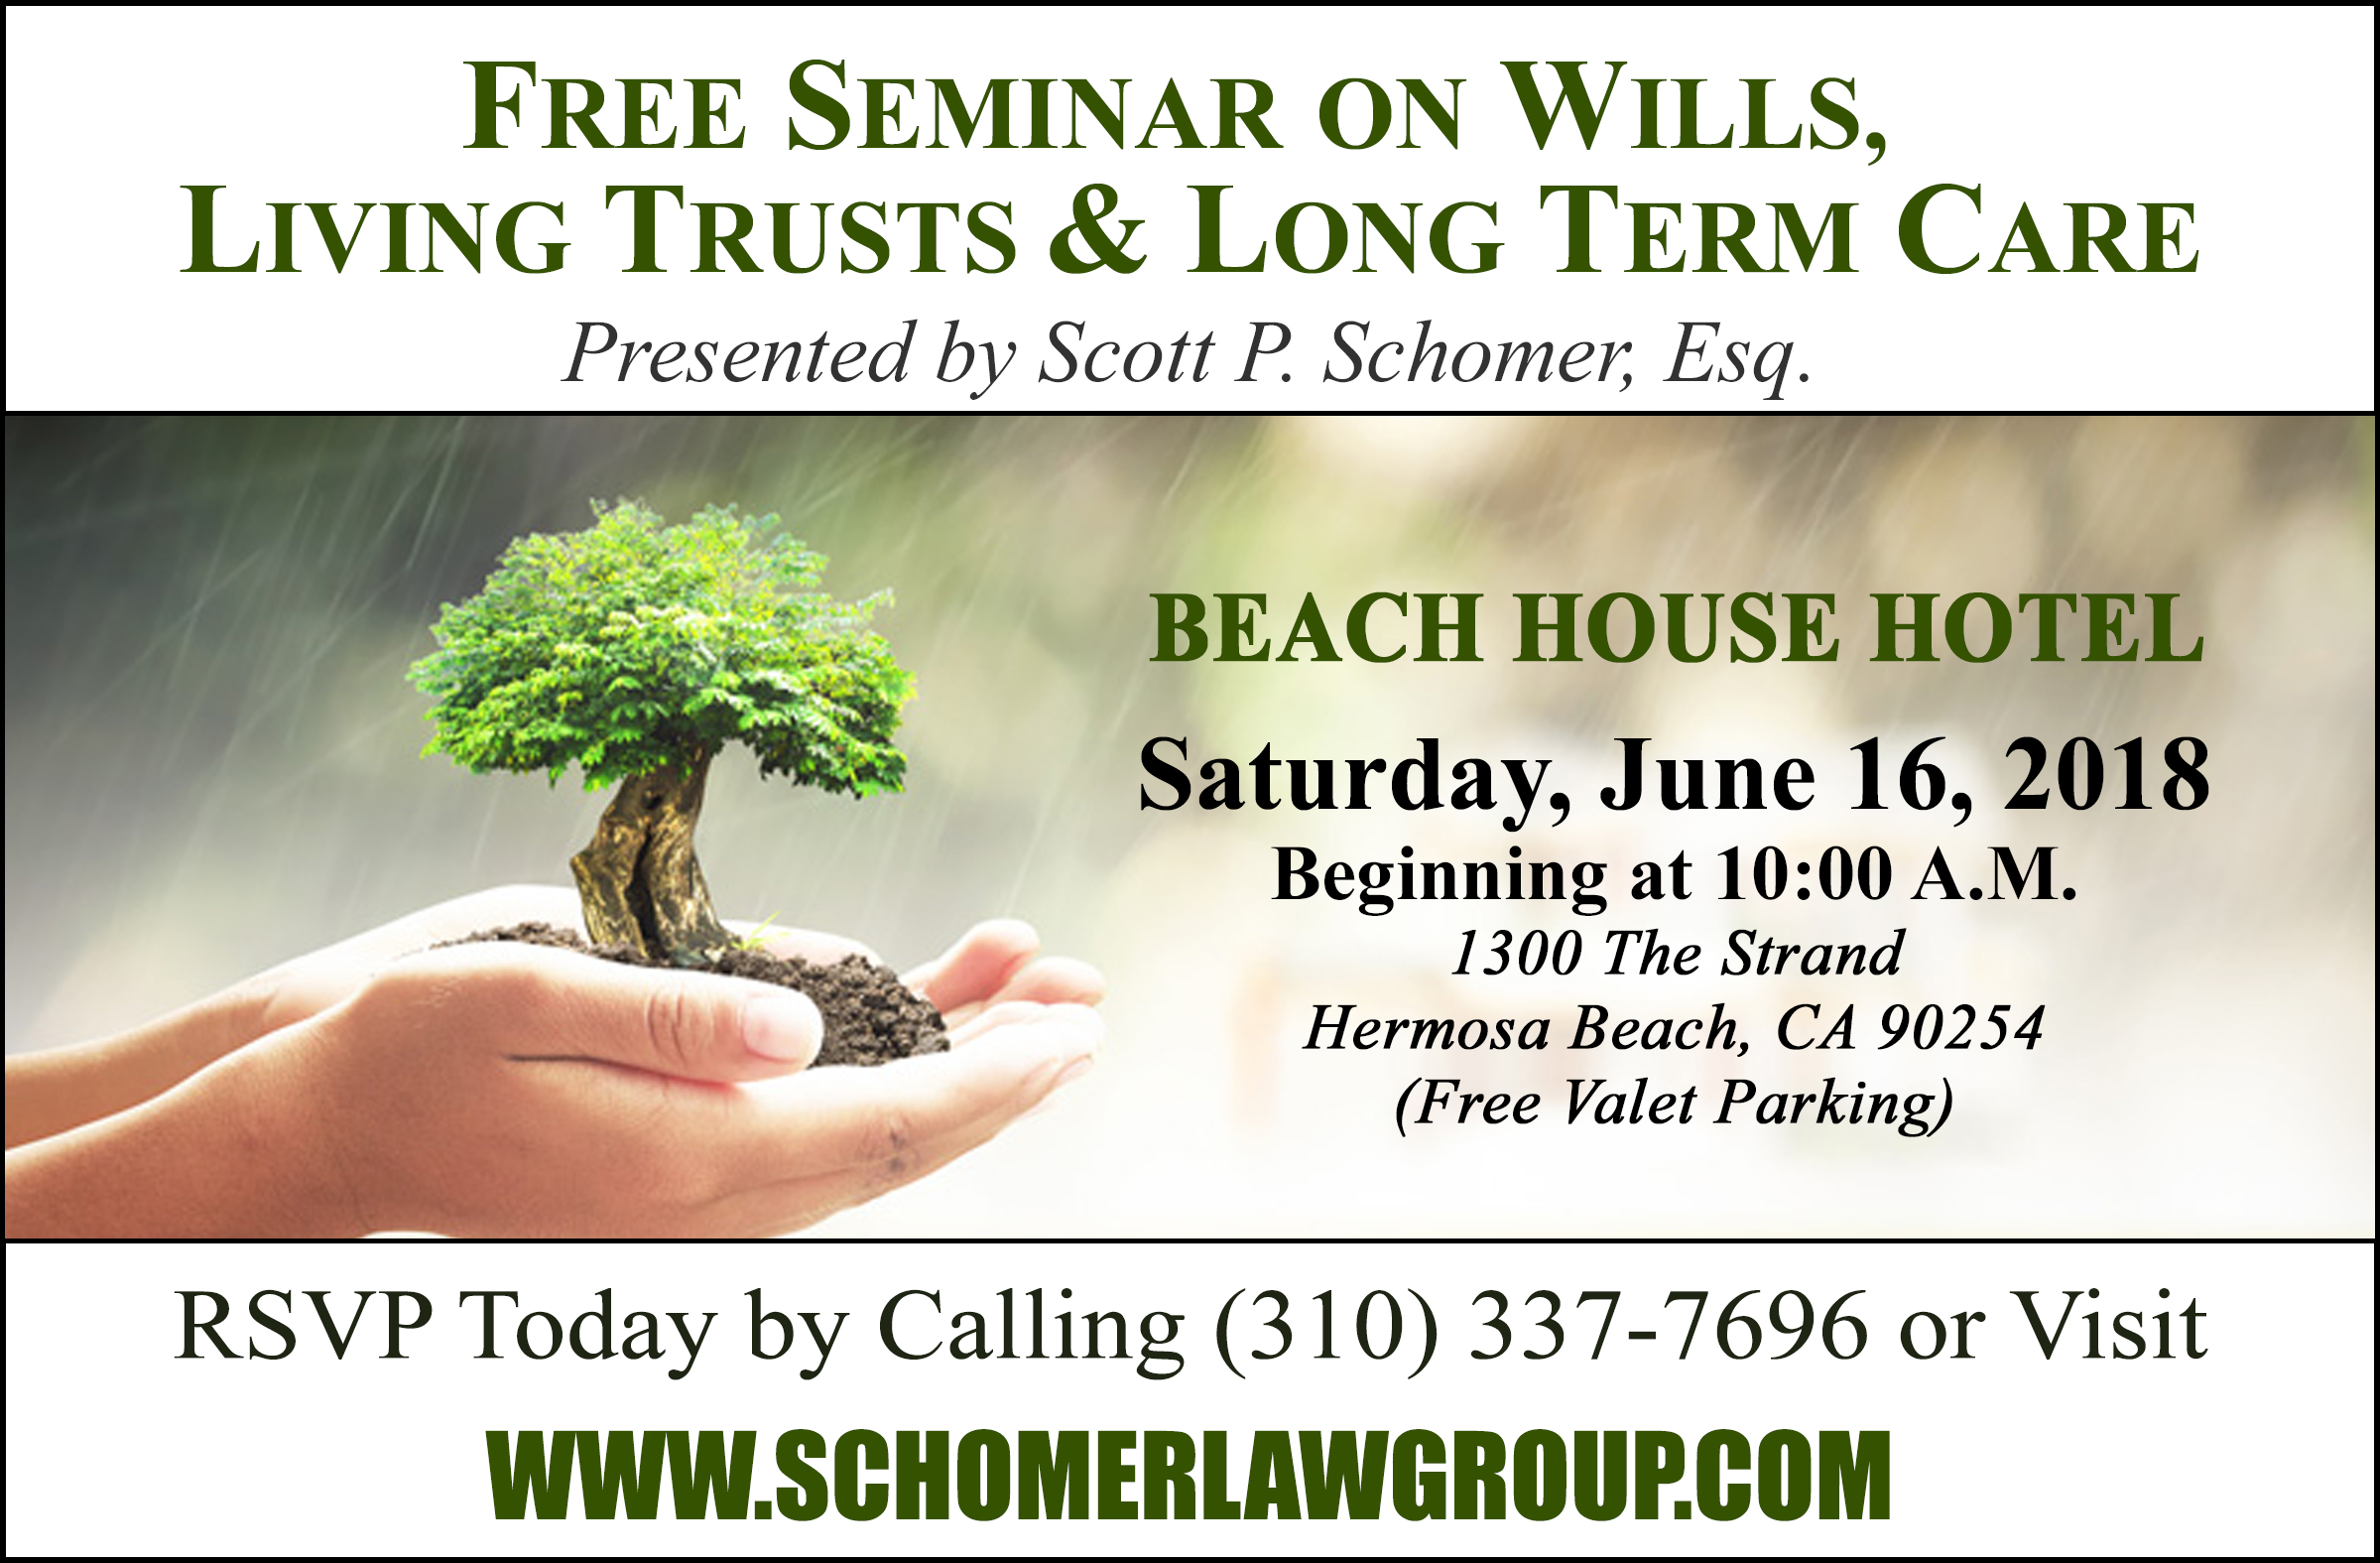 Free Seminar on Wills, Living Trusts & Long Term Care!